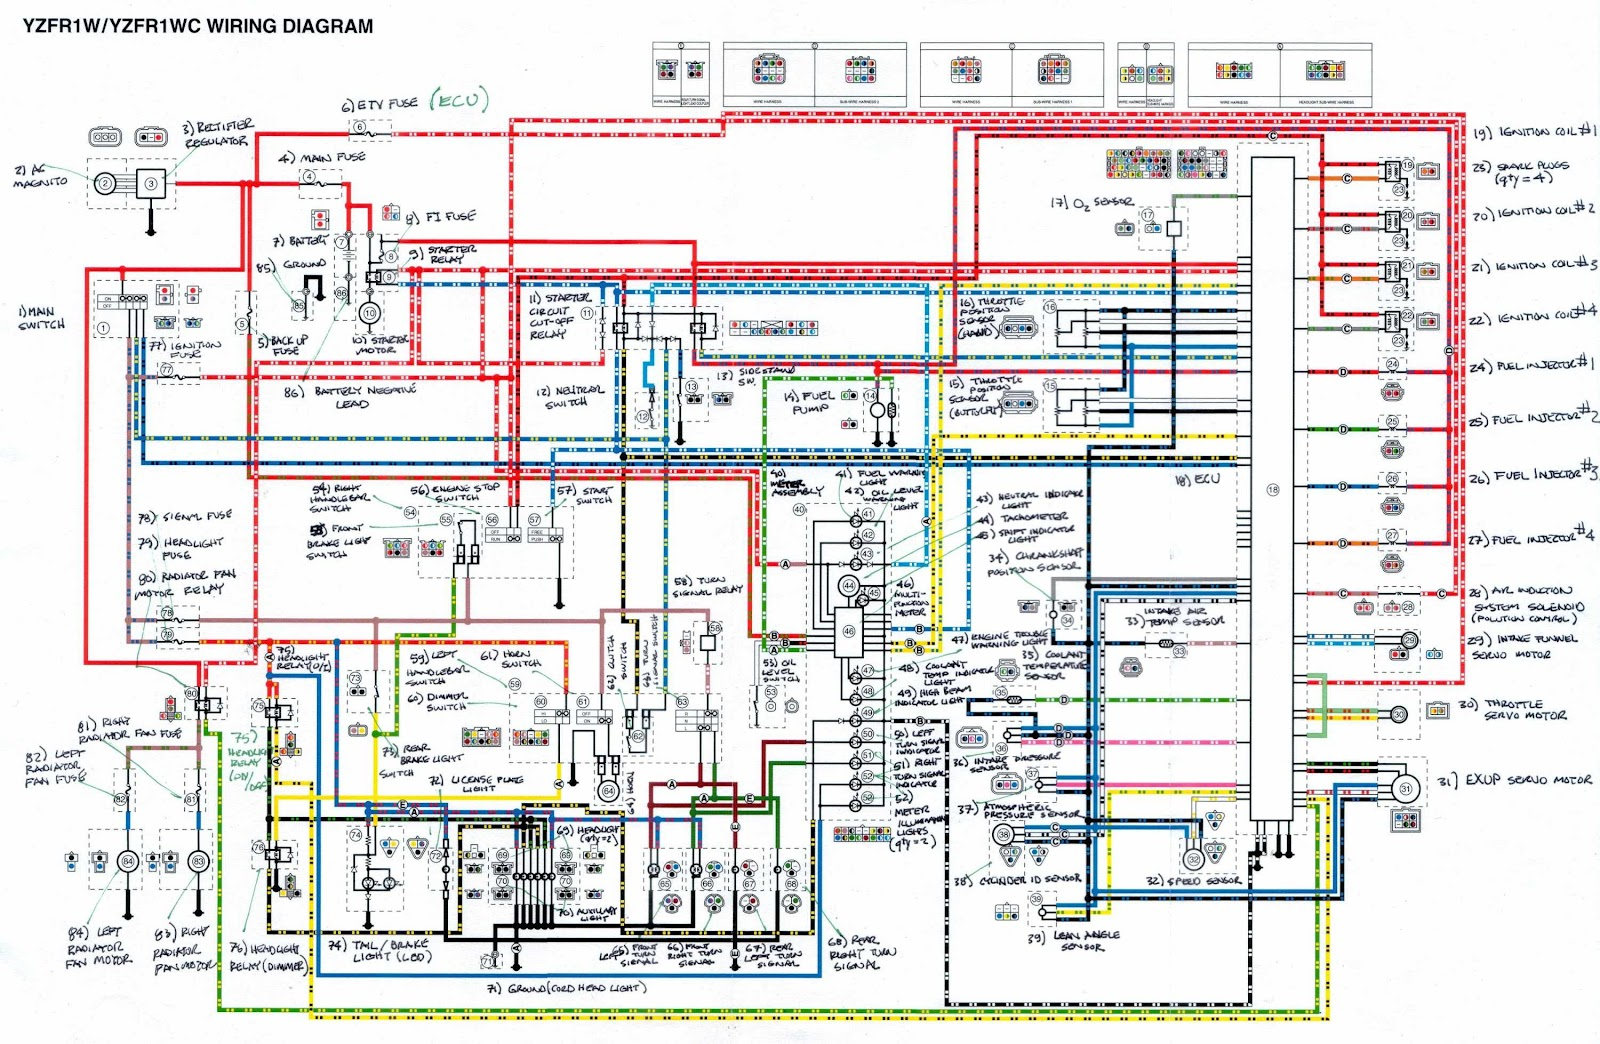 Audi A3 Fuse Box Diagram Pdf Starting Know About Wiring Mercedes Slk 32 2002 Yamaha Yzf R1 Motorcycle All